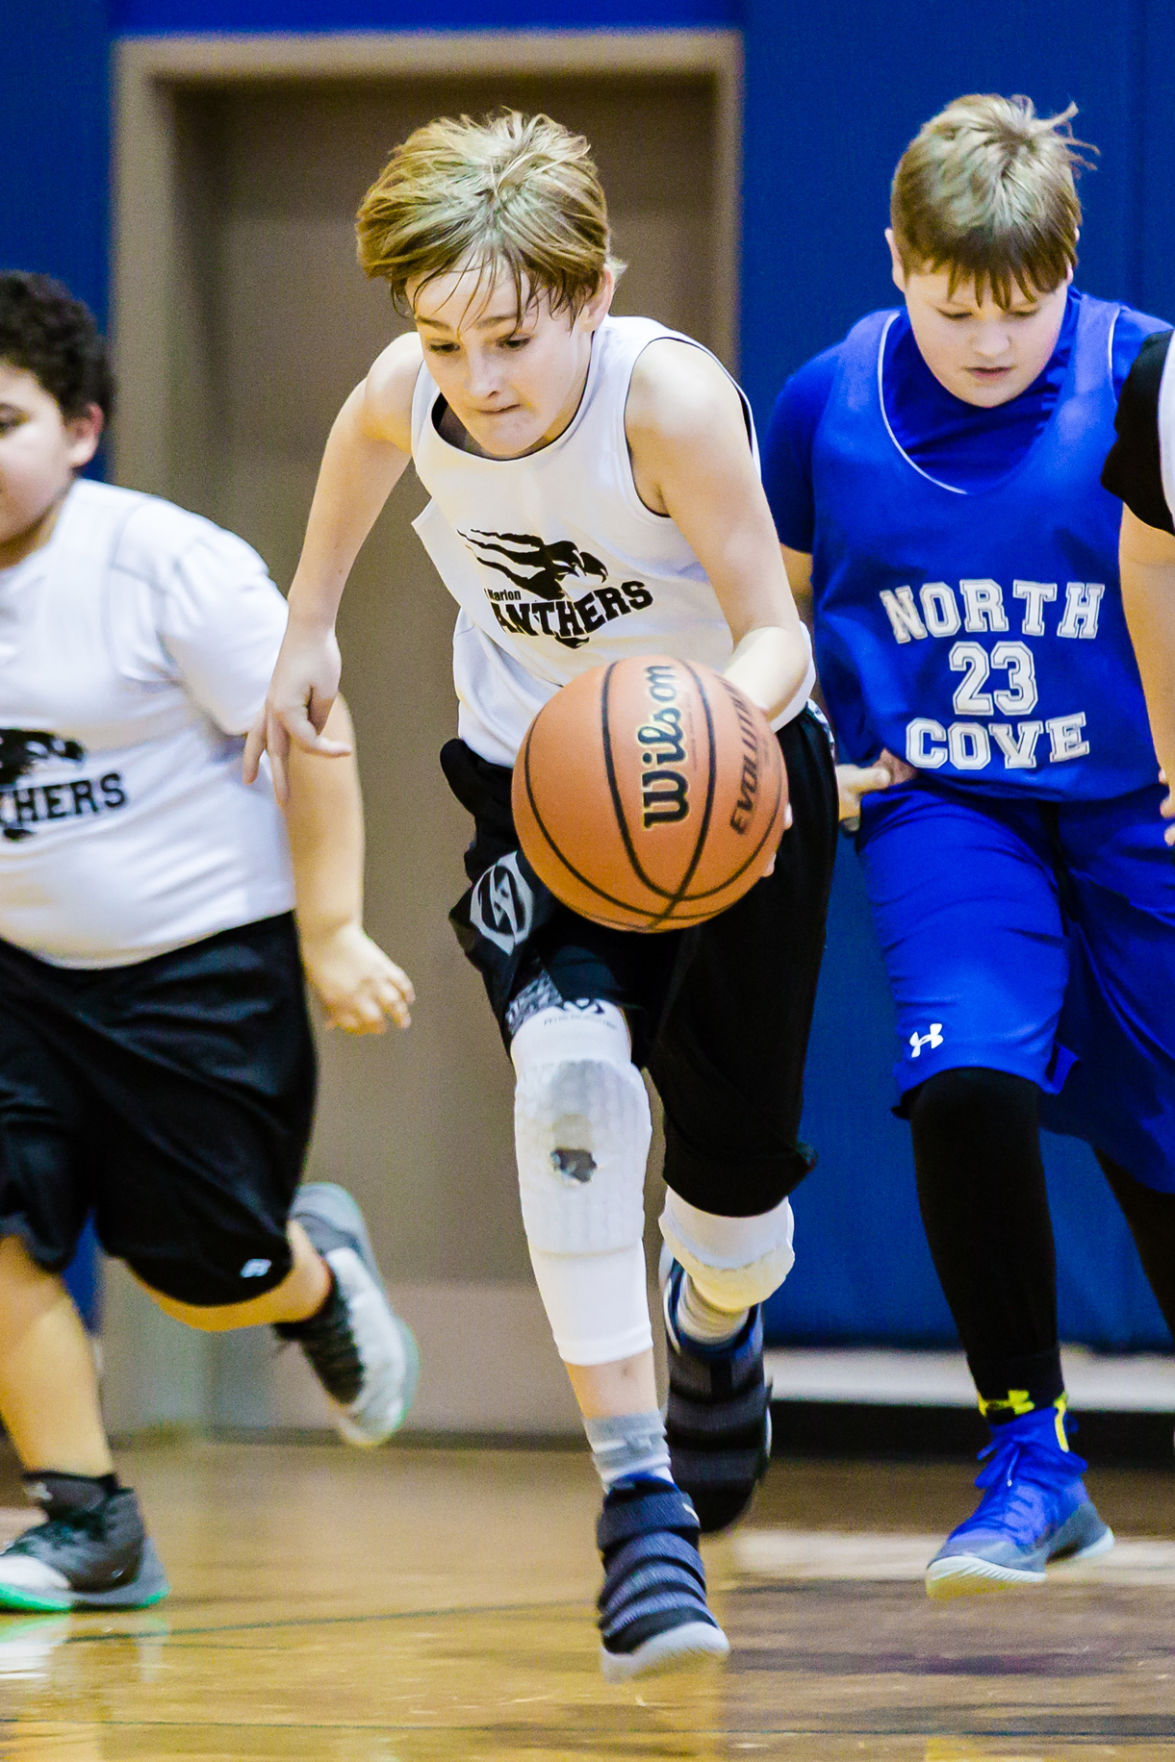 16 sports-youth sports photo page1.jpg